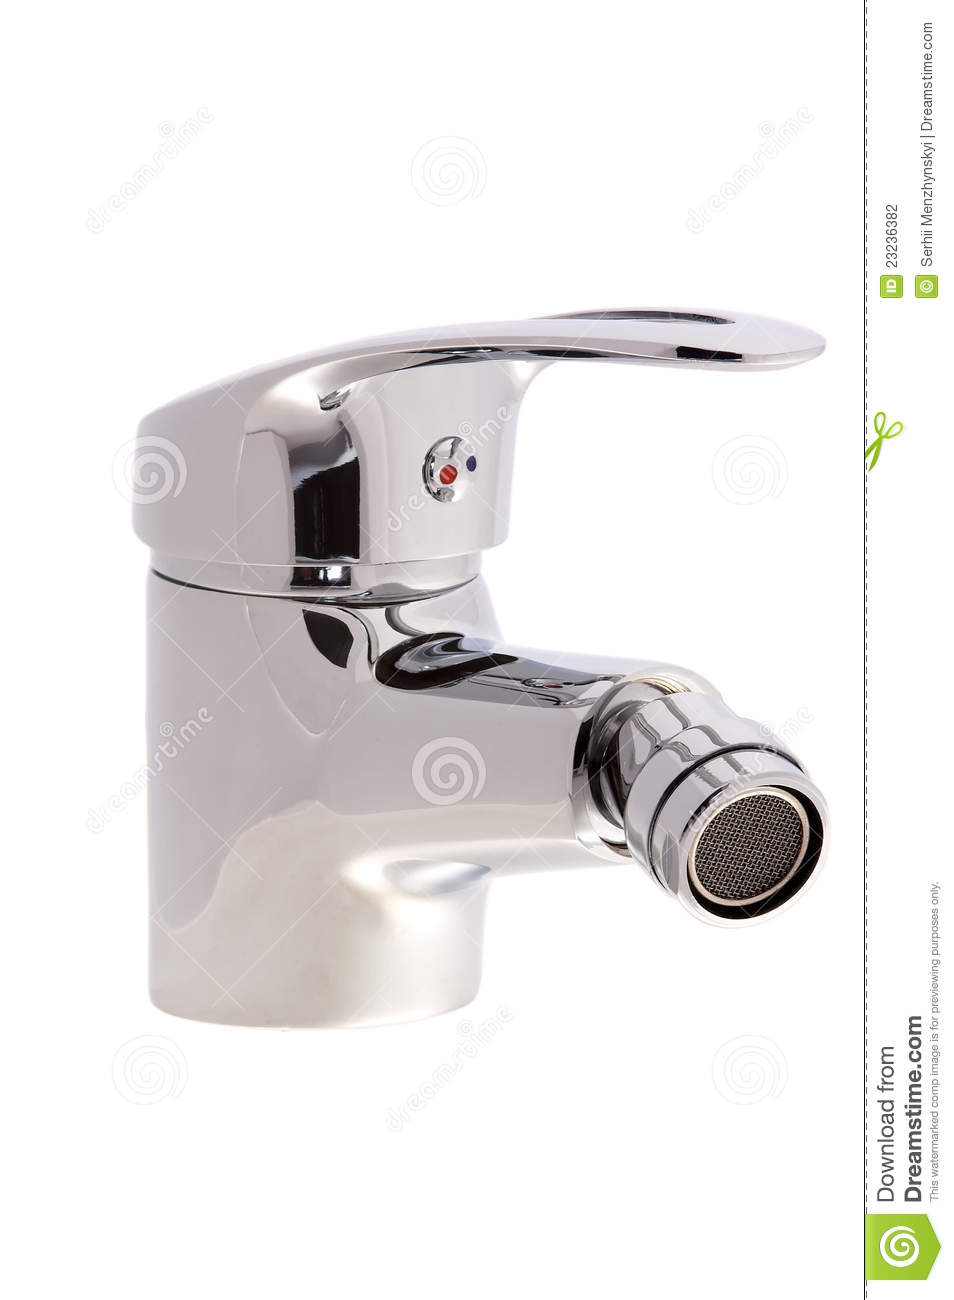 Chrome faucet water tap with a swivel head on an isolated background ...